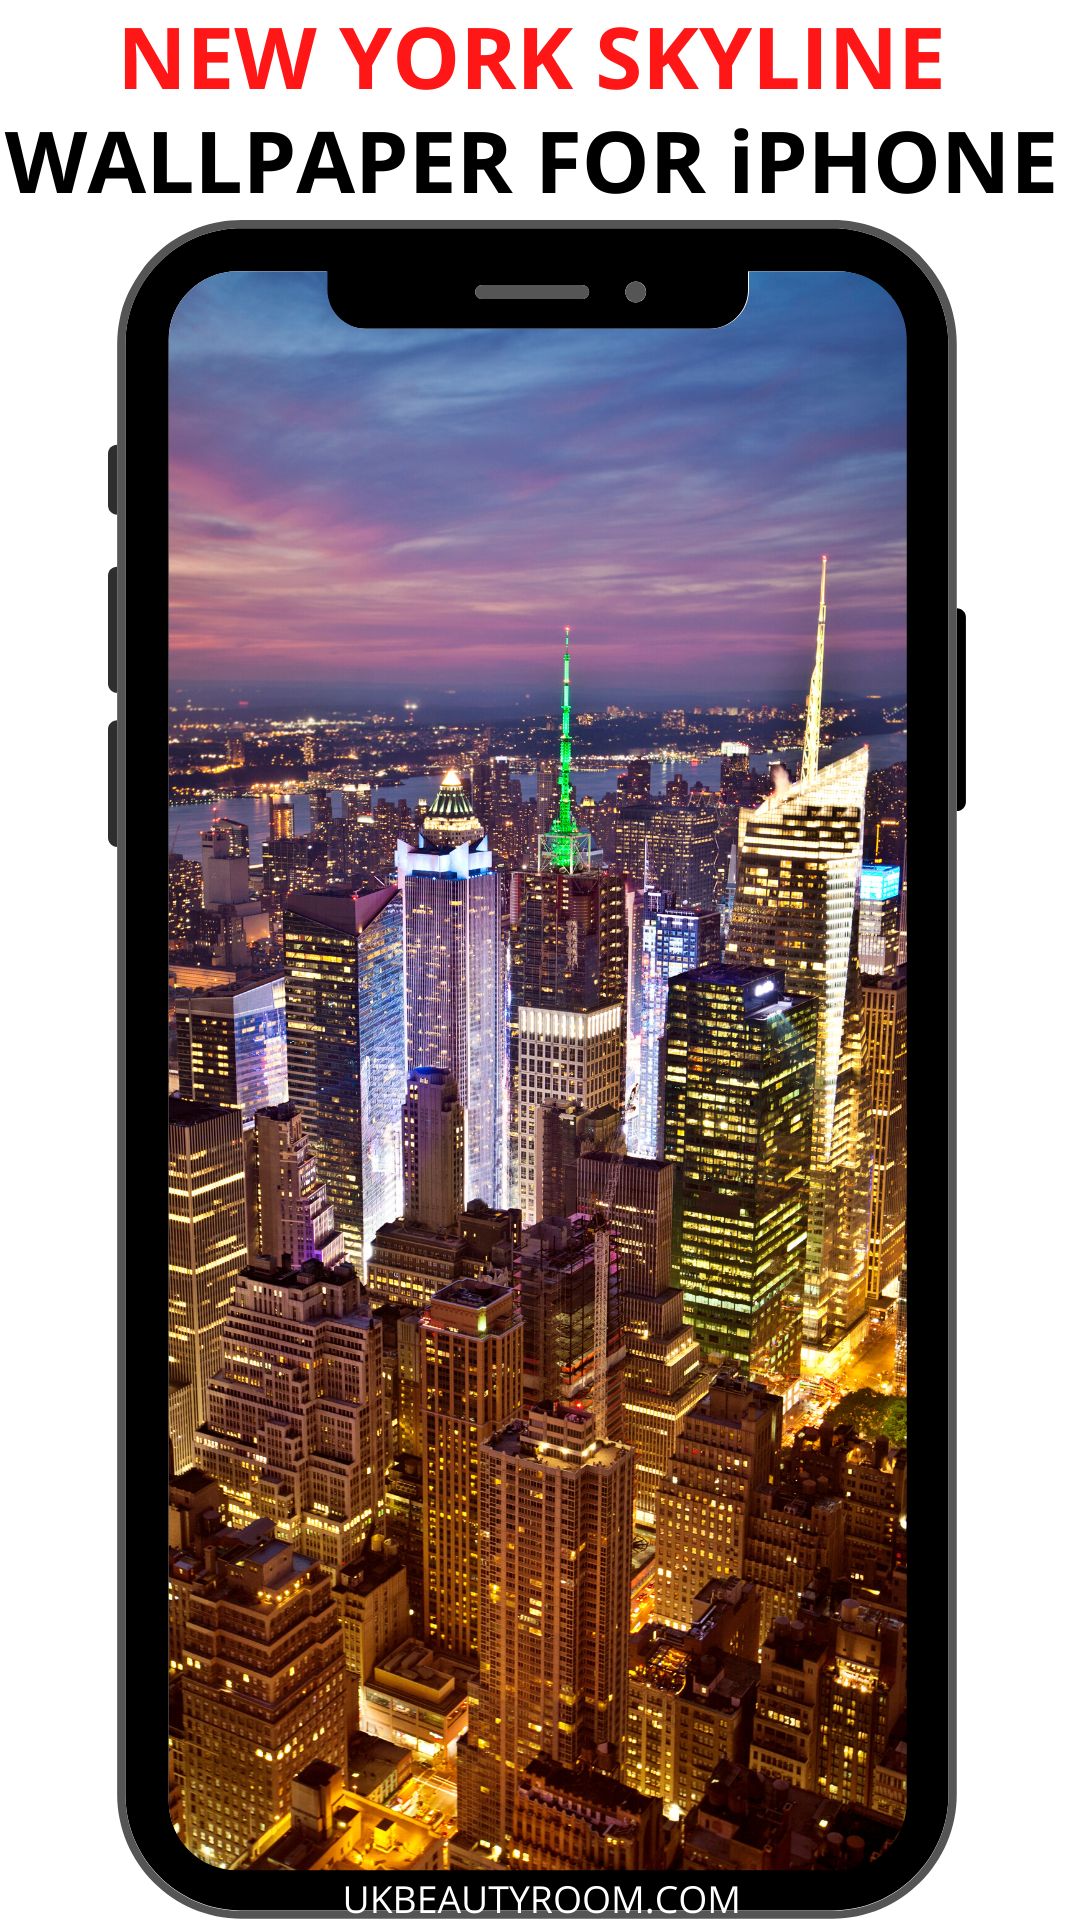 New York Skyline Wallpaper for iPhone in 2020 Iphone